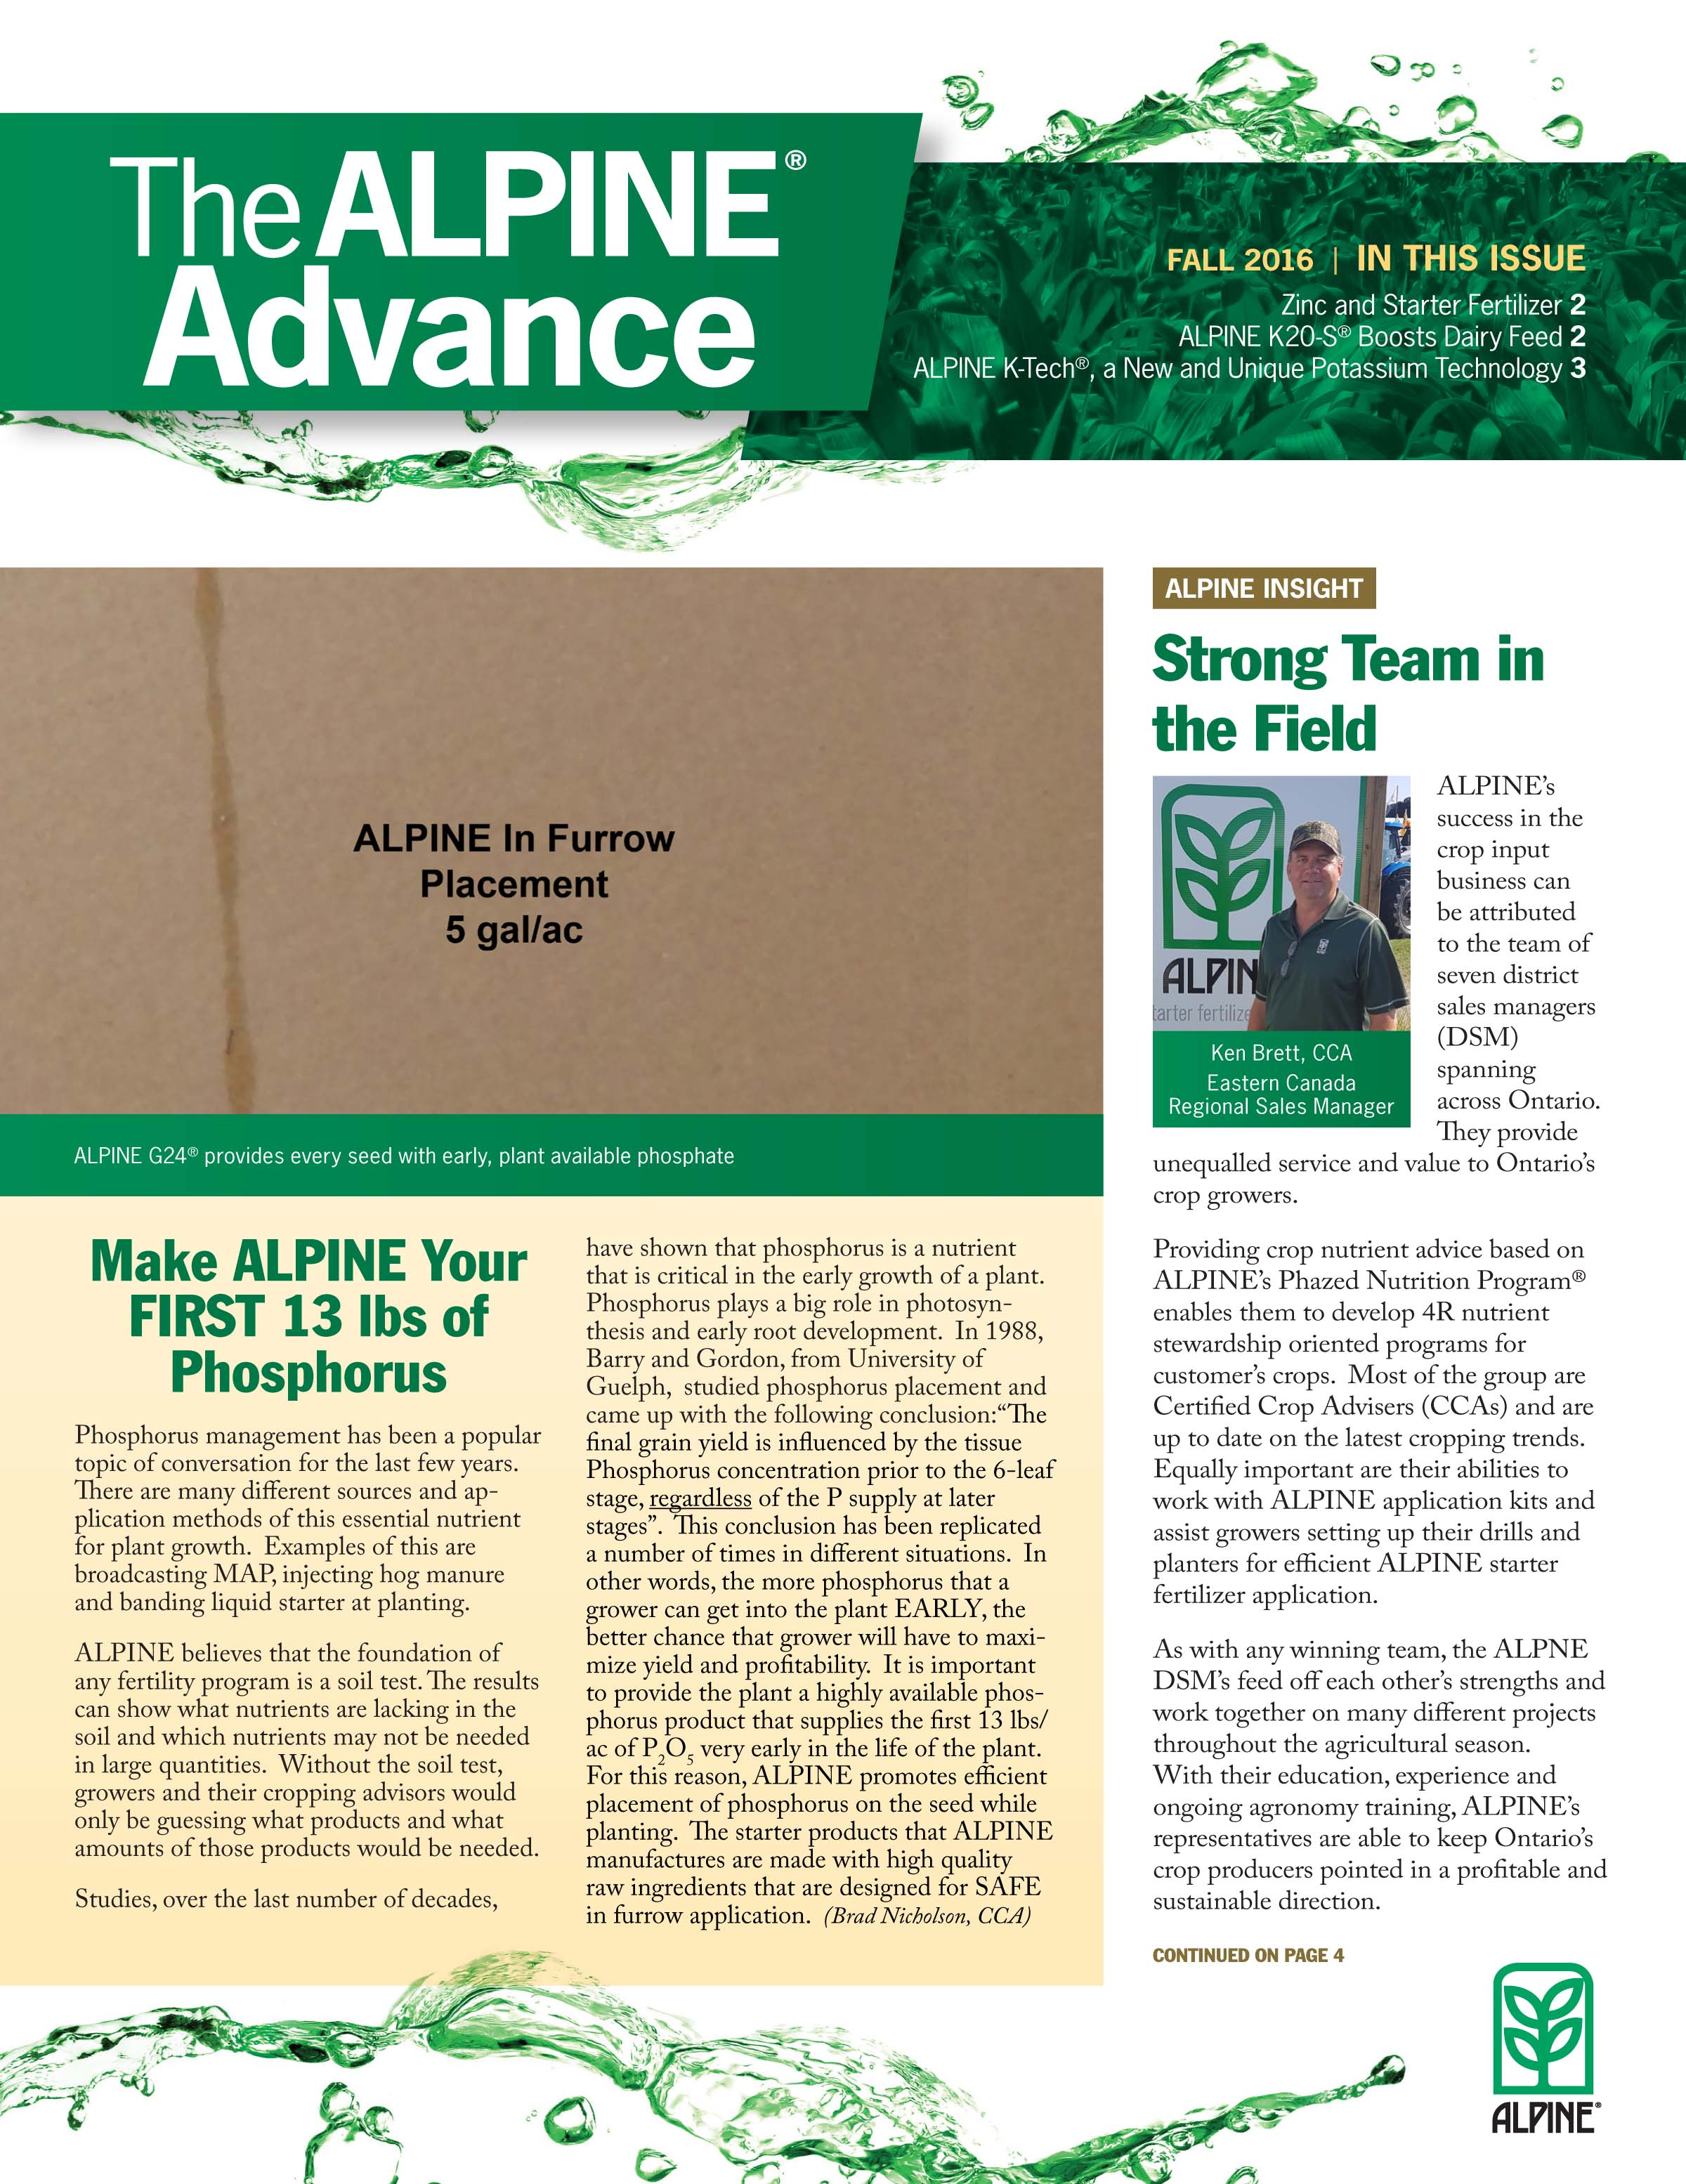 The Alpine Advance Fall 2016